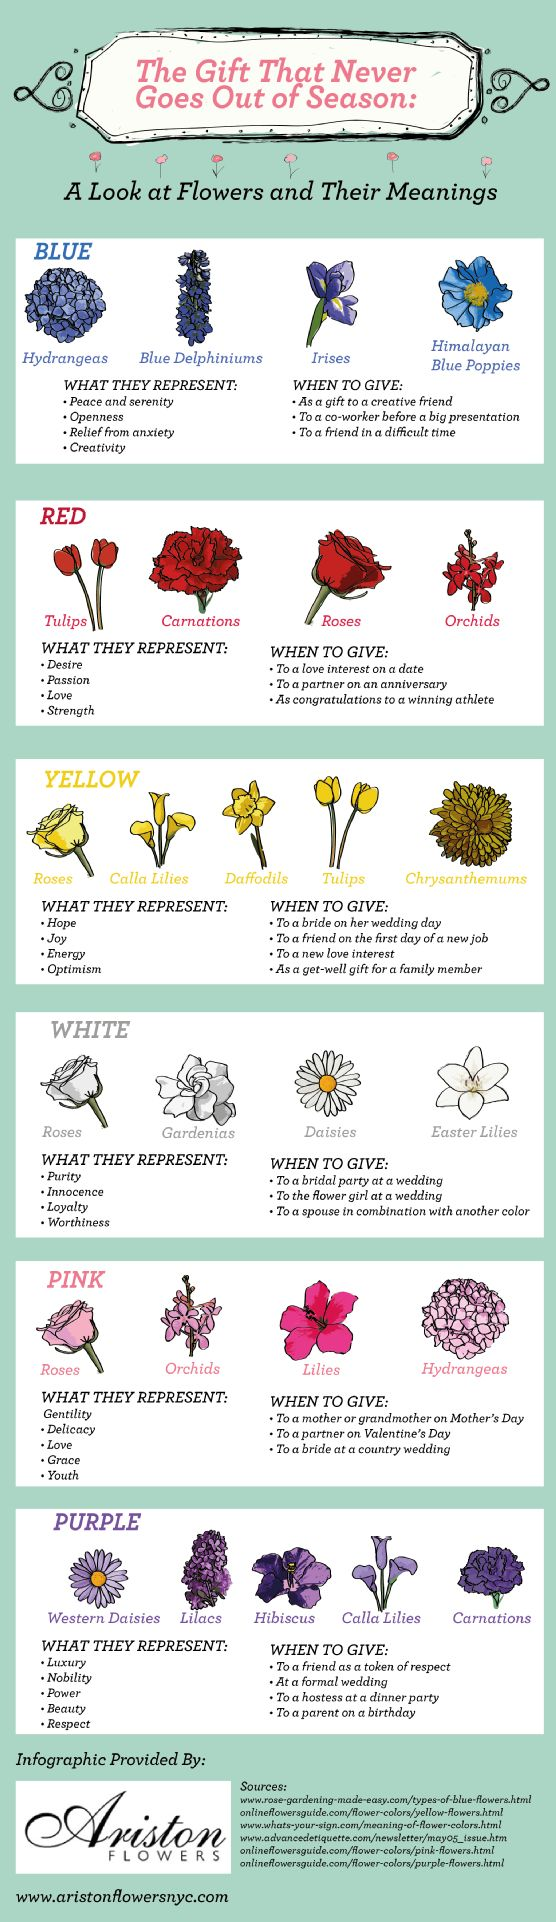 Flowers & their meanings.